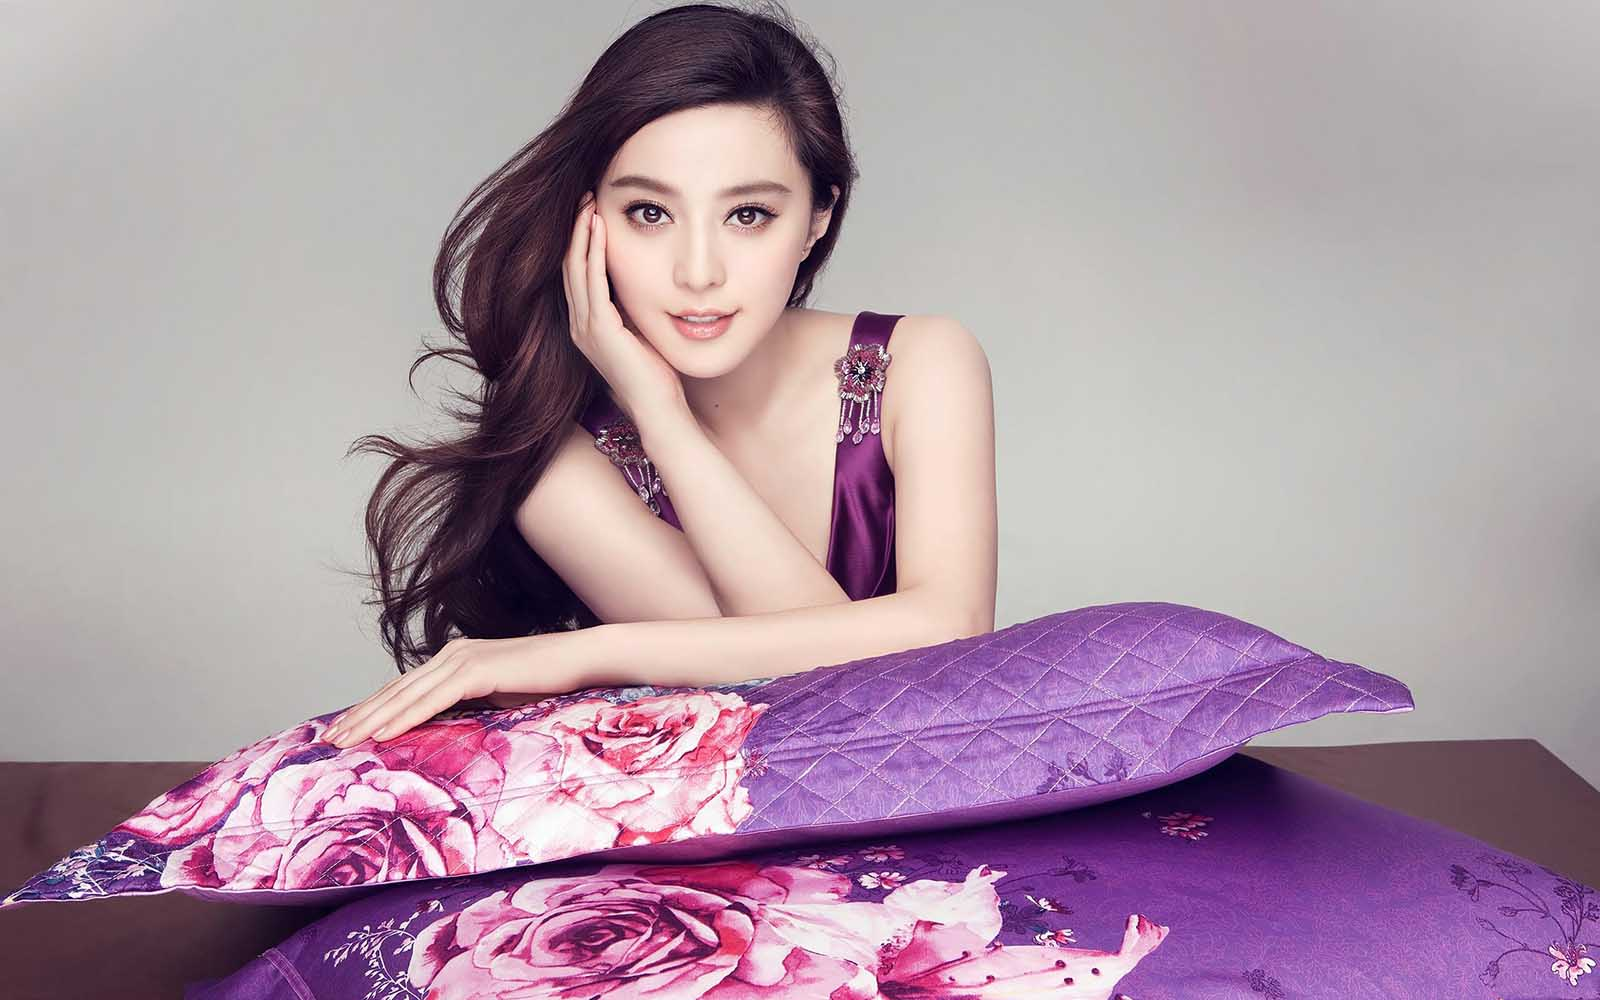 Fan Bingbing was on the top of China's entertainment industry before her tax evasion scandal. But can she find her way back to the top?